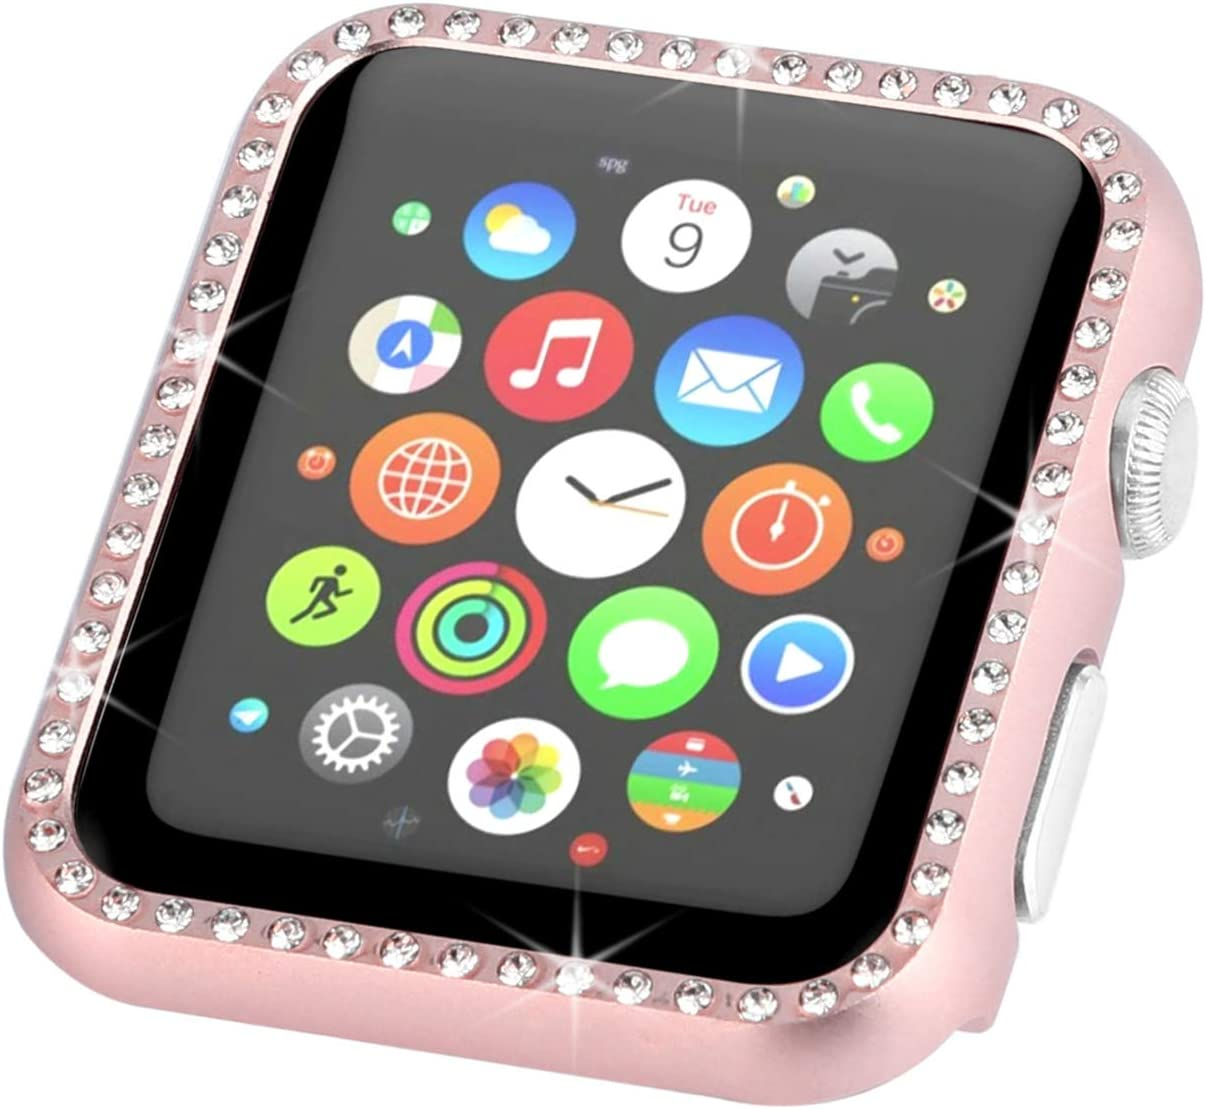 Fashion Metal Case with 3D Bling Crystal Diamonds Plate Protective Cover Ultra Thin Bumper Compatible for Apple Watch 38mm 42mm 40mm 44mm SE Series 6 Series 5 Series 4 3 2 1, Rose Gold, 44mm